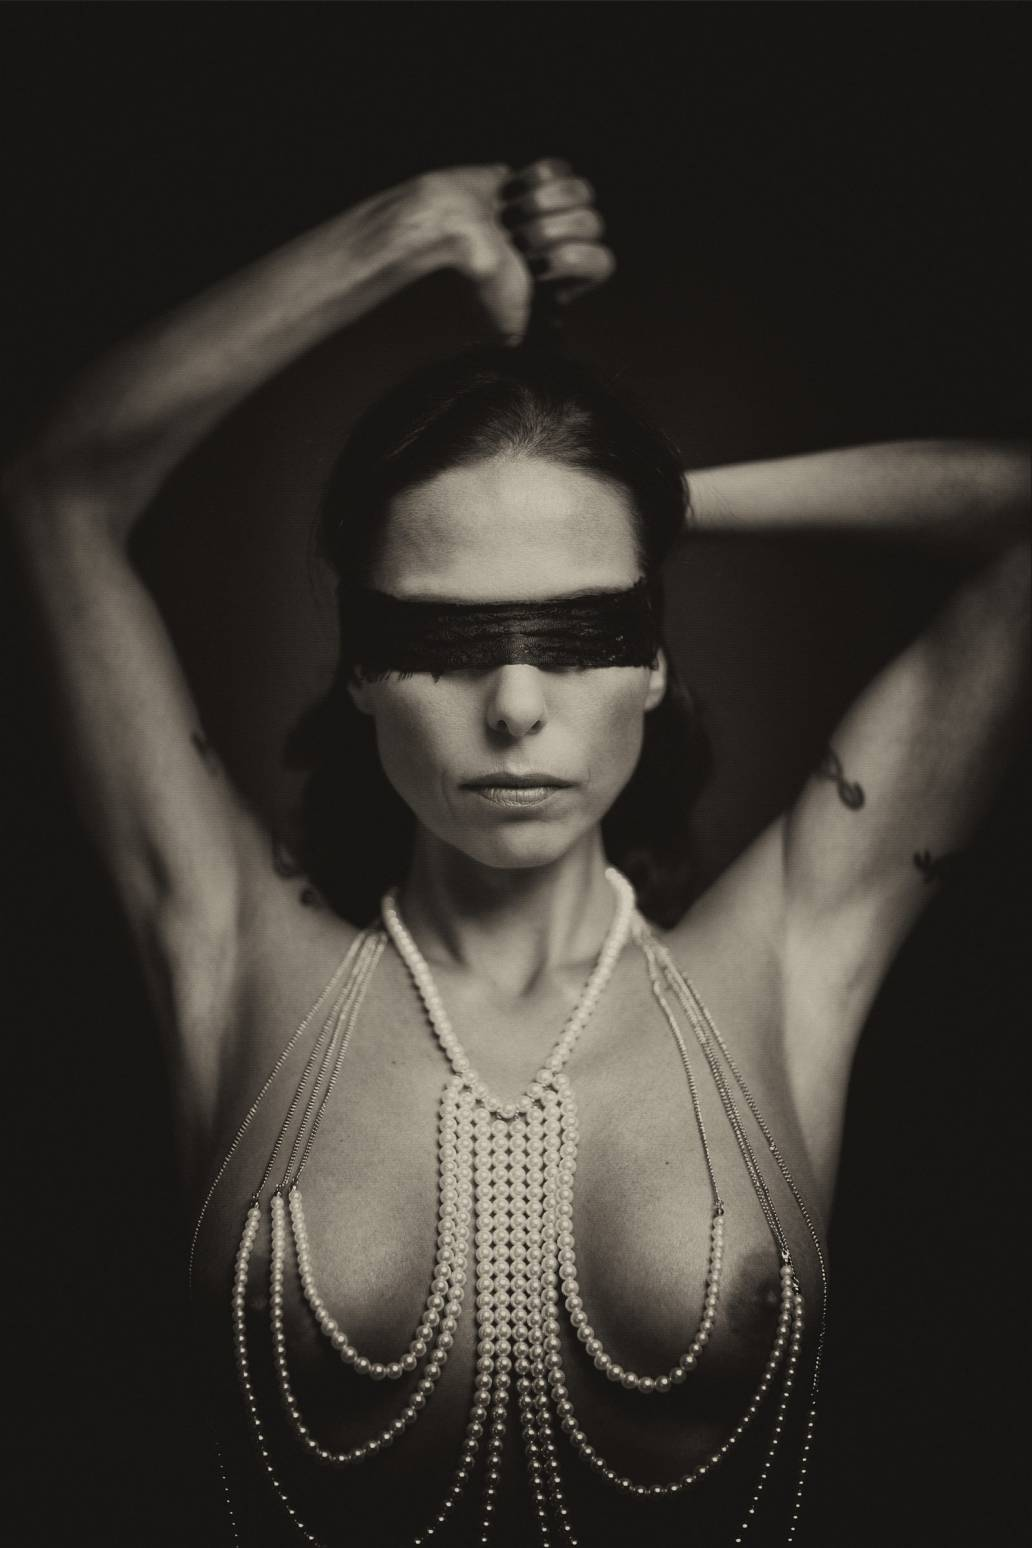 blindfold-and-pearl-necklace